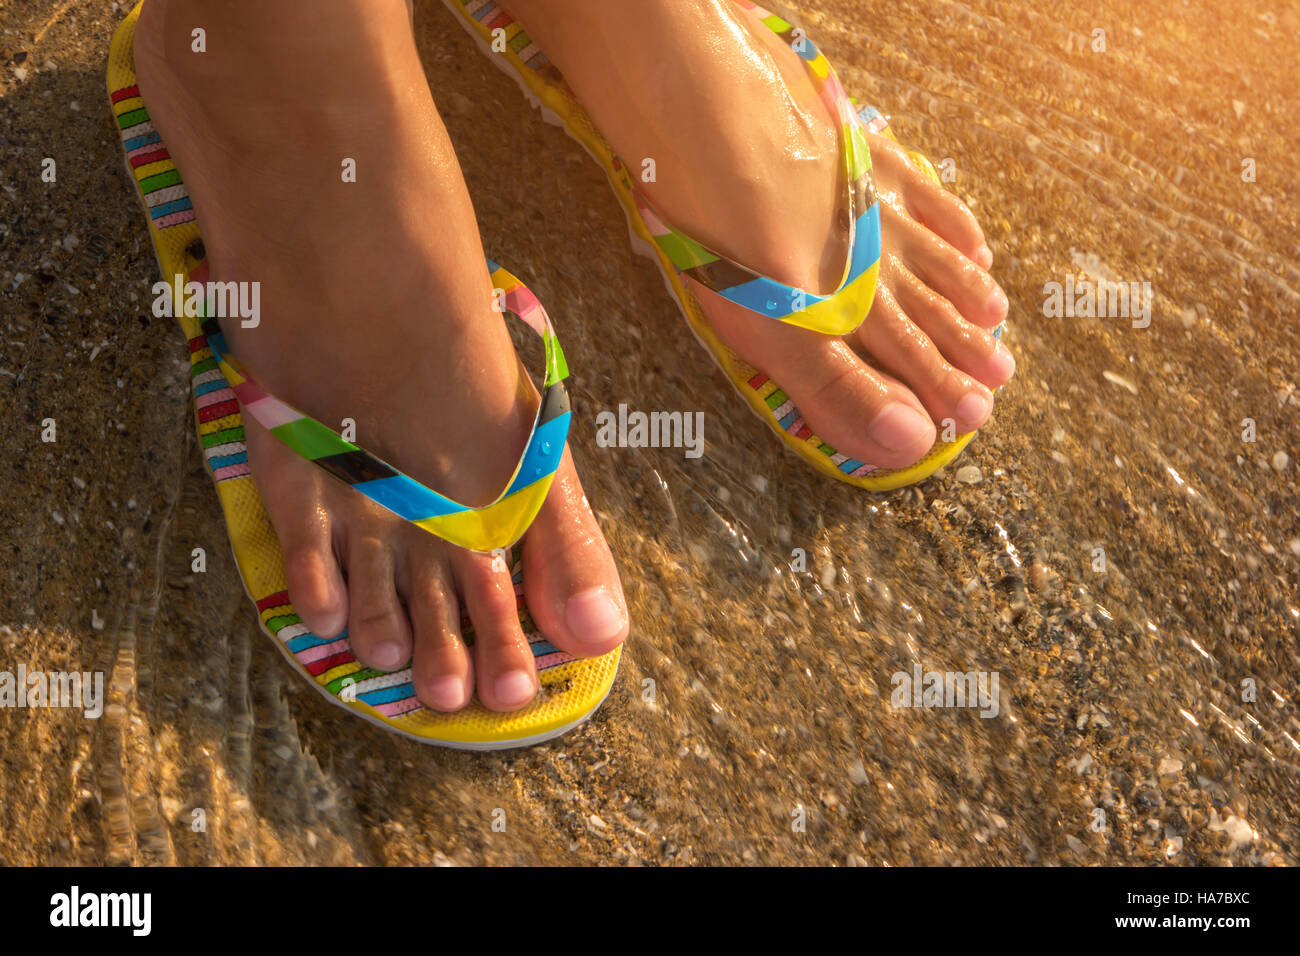 83fbda3ba48c40 Girl s feet in flip flops Stock Photo  126782164 - Alamy